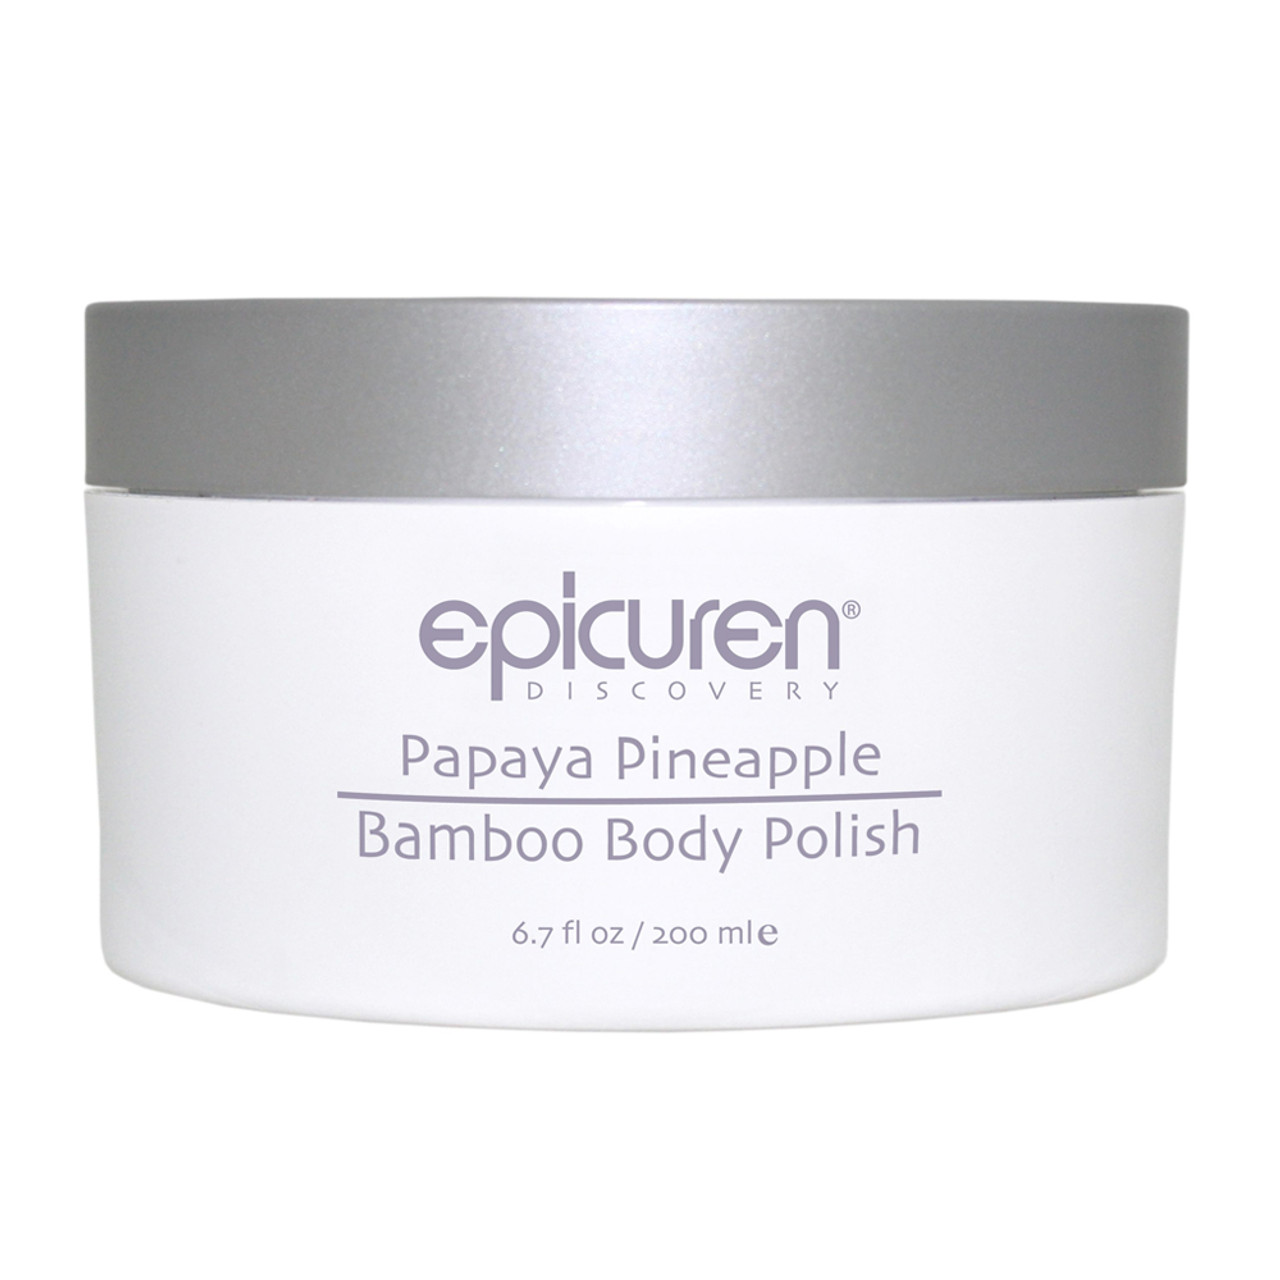 epicuren Discovery Papaya Pineapple Bamboo Body Polish